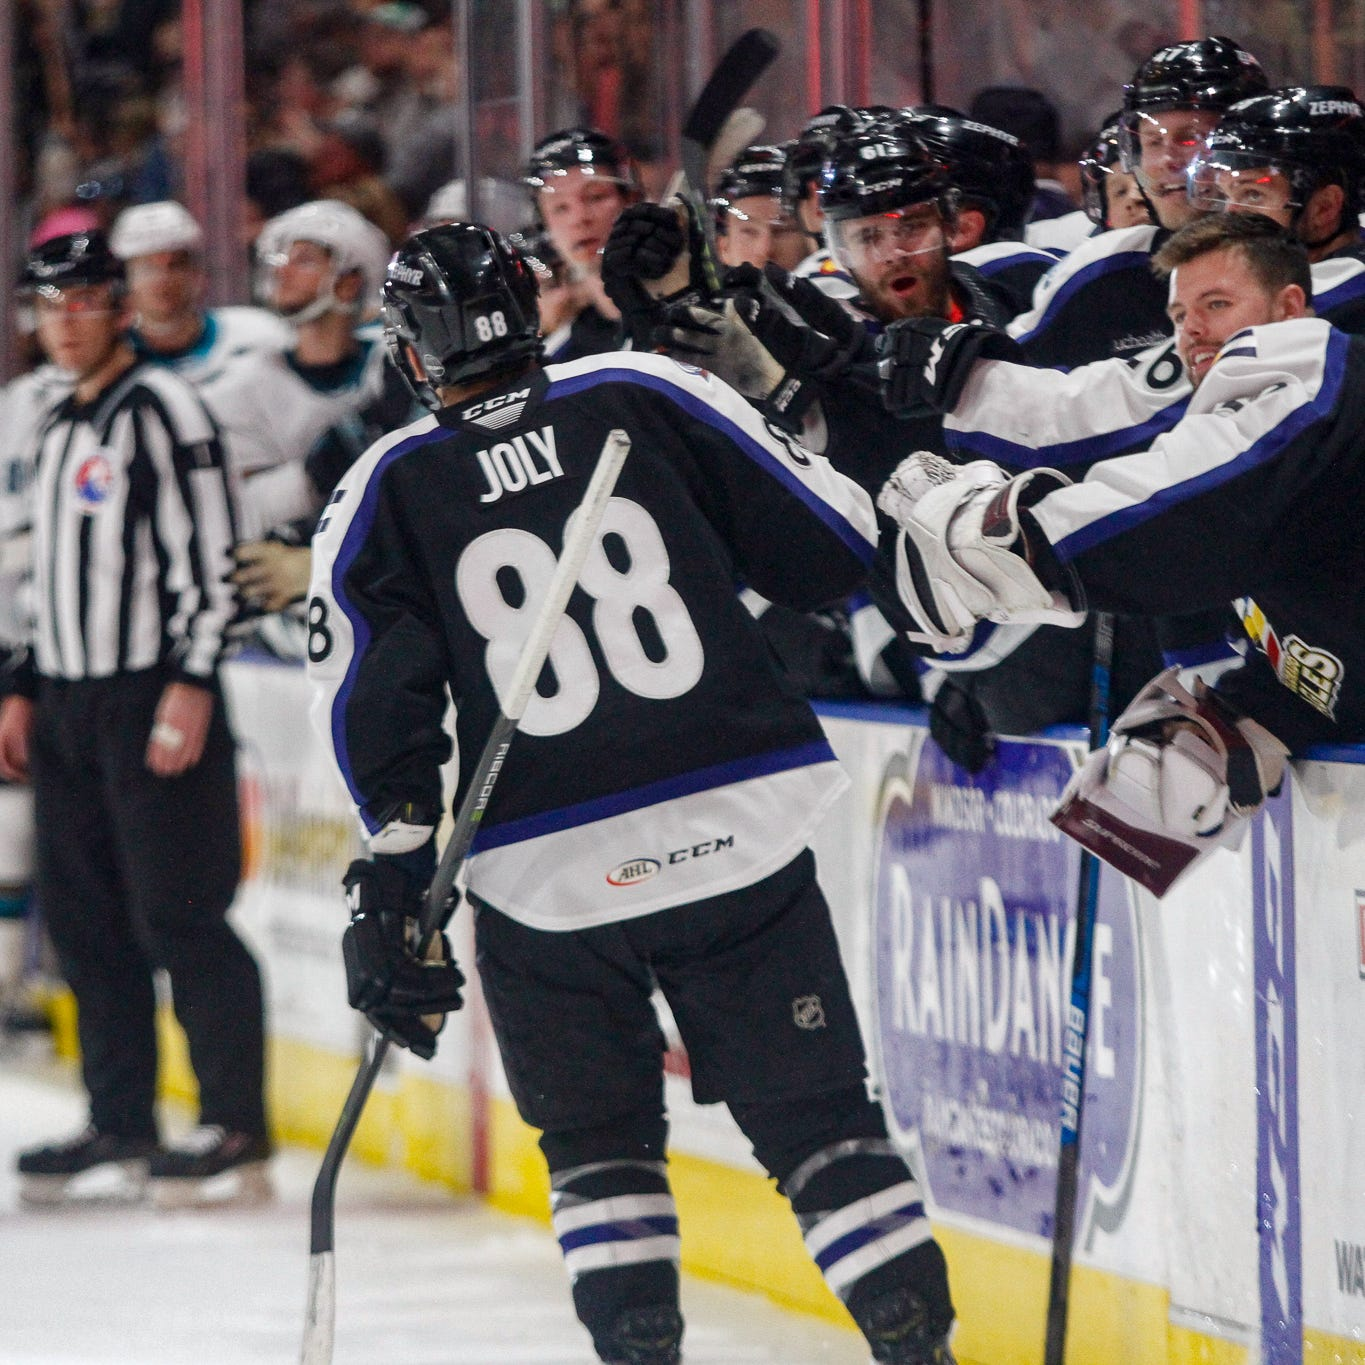 Colorado Eagles sneak into AHL playoffs